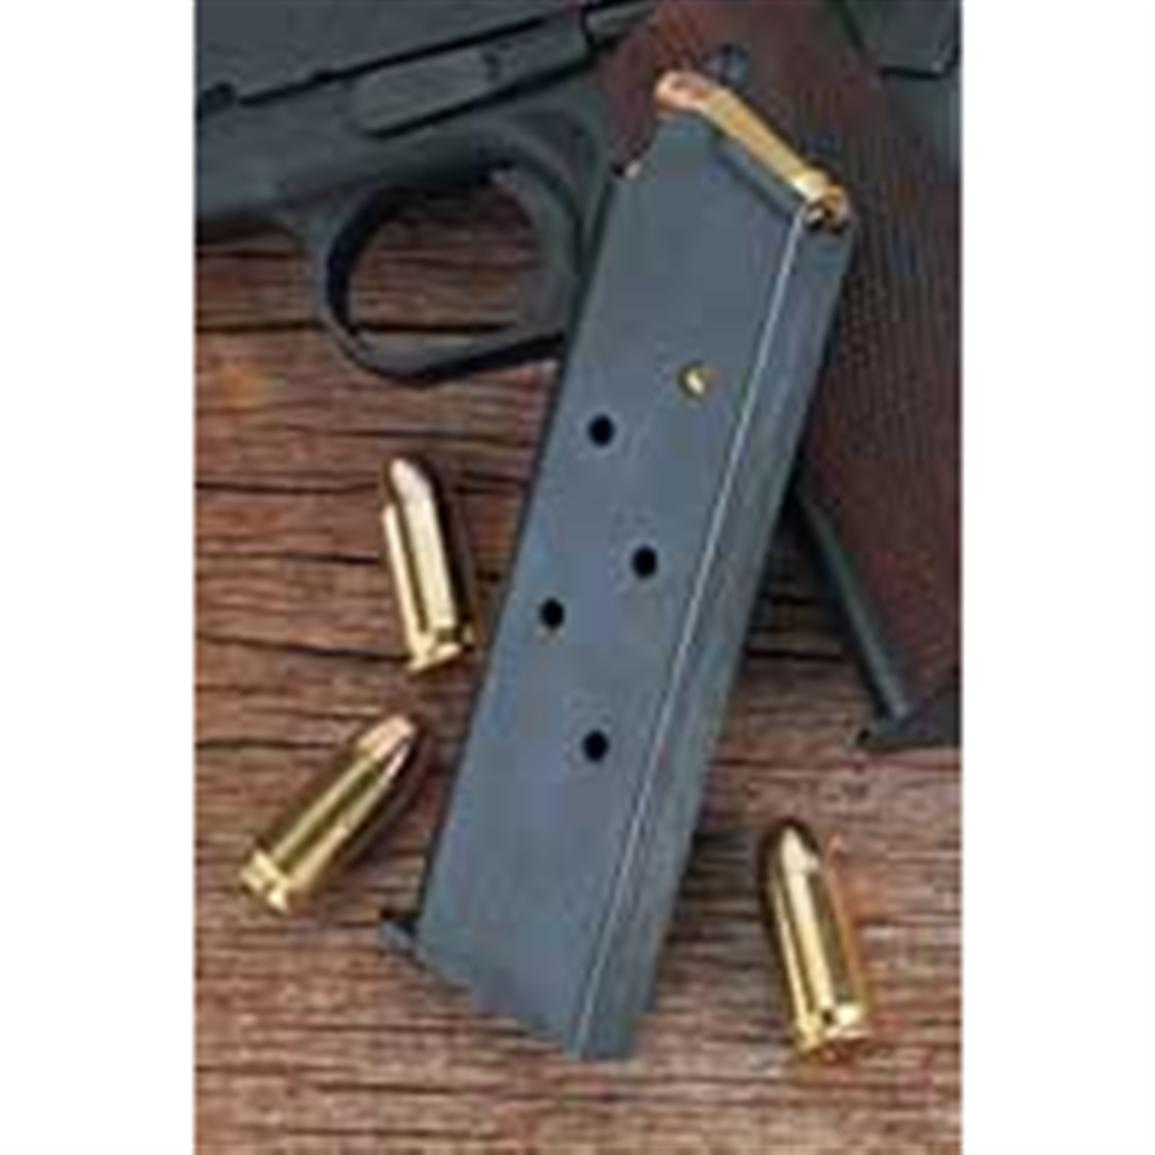 7-rd. 1911 Mags